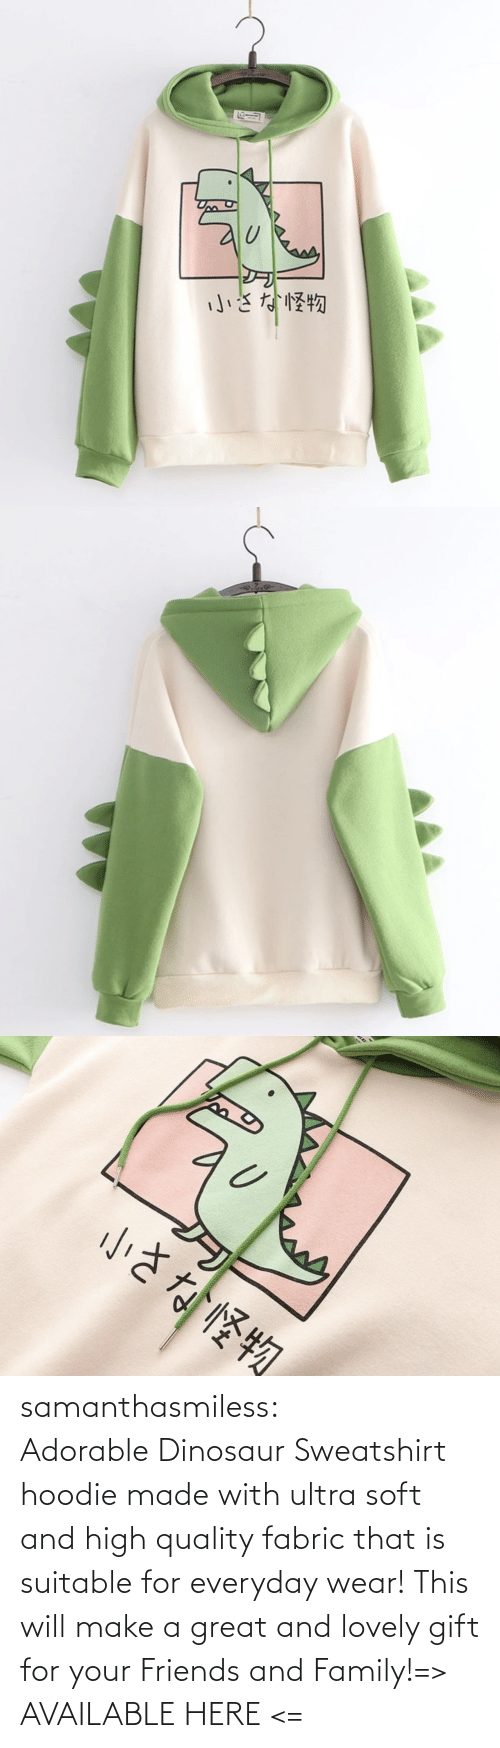 Dinosaur, Family, and Friends: samanthasmiless:  AdorableDinosaur Sweatshirt hoodie made with ultra soft and high quality fabric that is suitable for everyday wear! This will make a great and lovely gift for your Friends and Family!=> AVAILABLE HERE <=